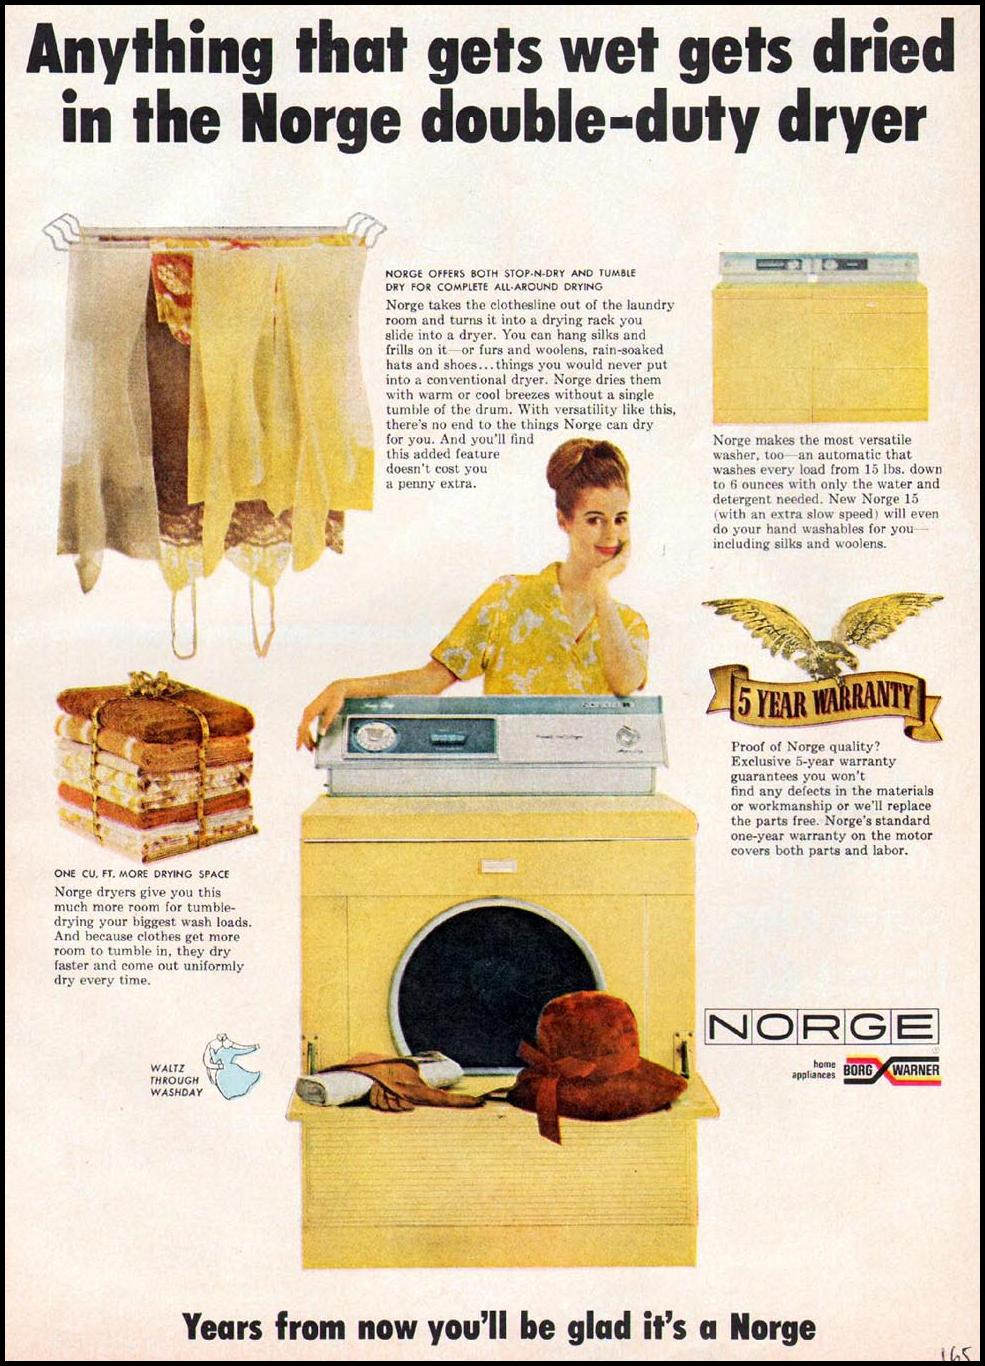 NORGE CLOTHES DRYER GOOD HOUSEKEEPING 10/01/1965 p. 165